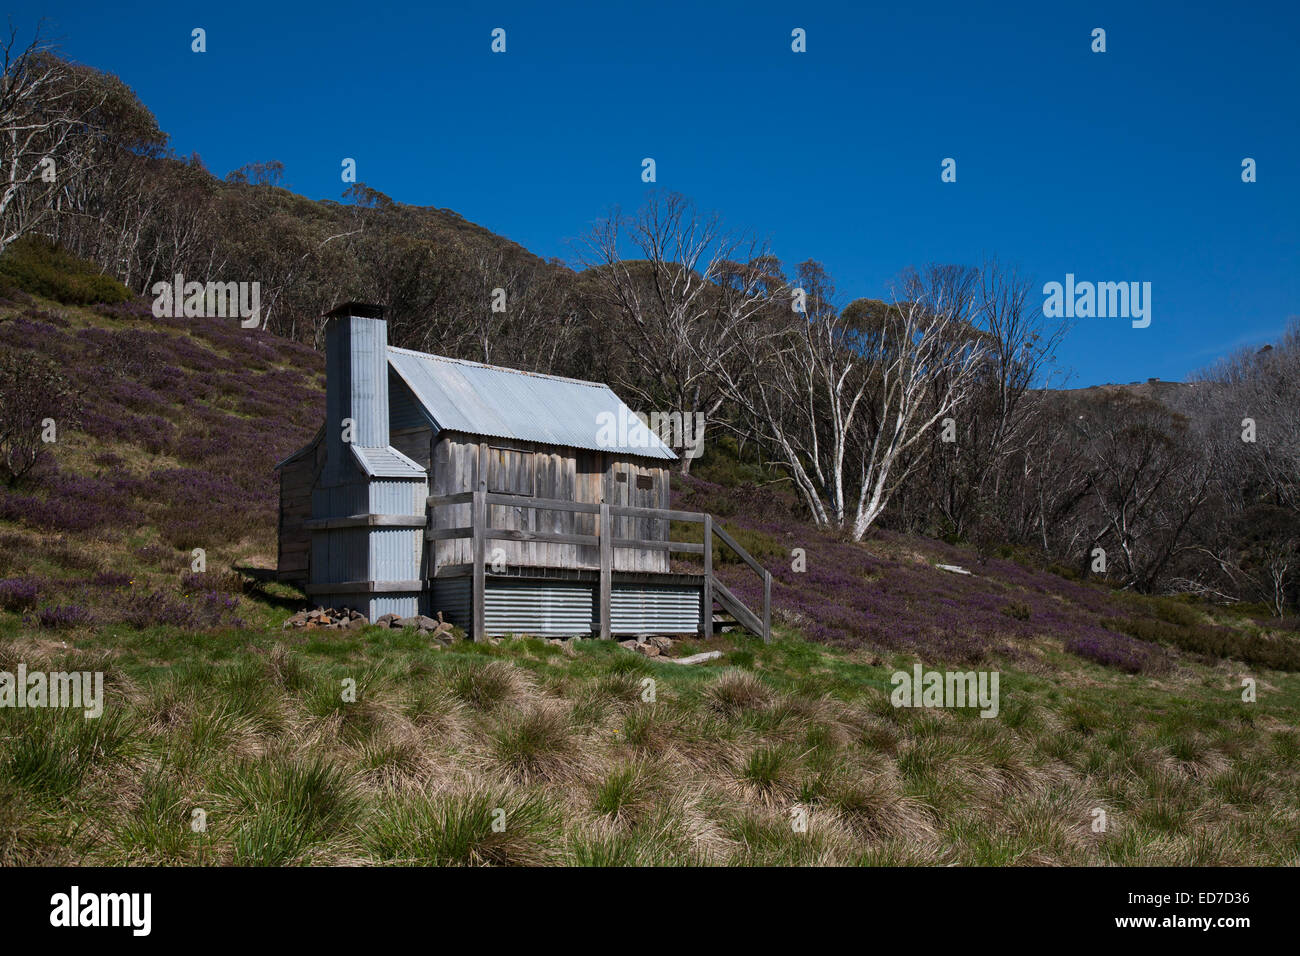 The Silver Brumby Hut, slab timber built, Mt Hotham in Victoria's Alpine Country Australia - Stock Image